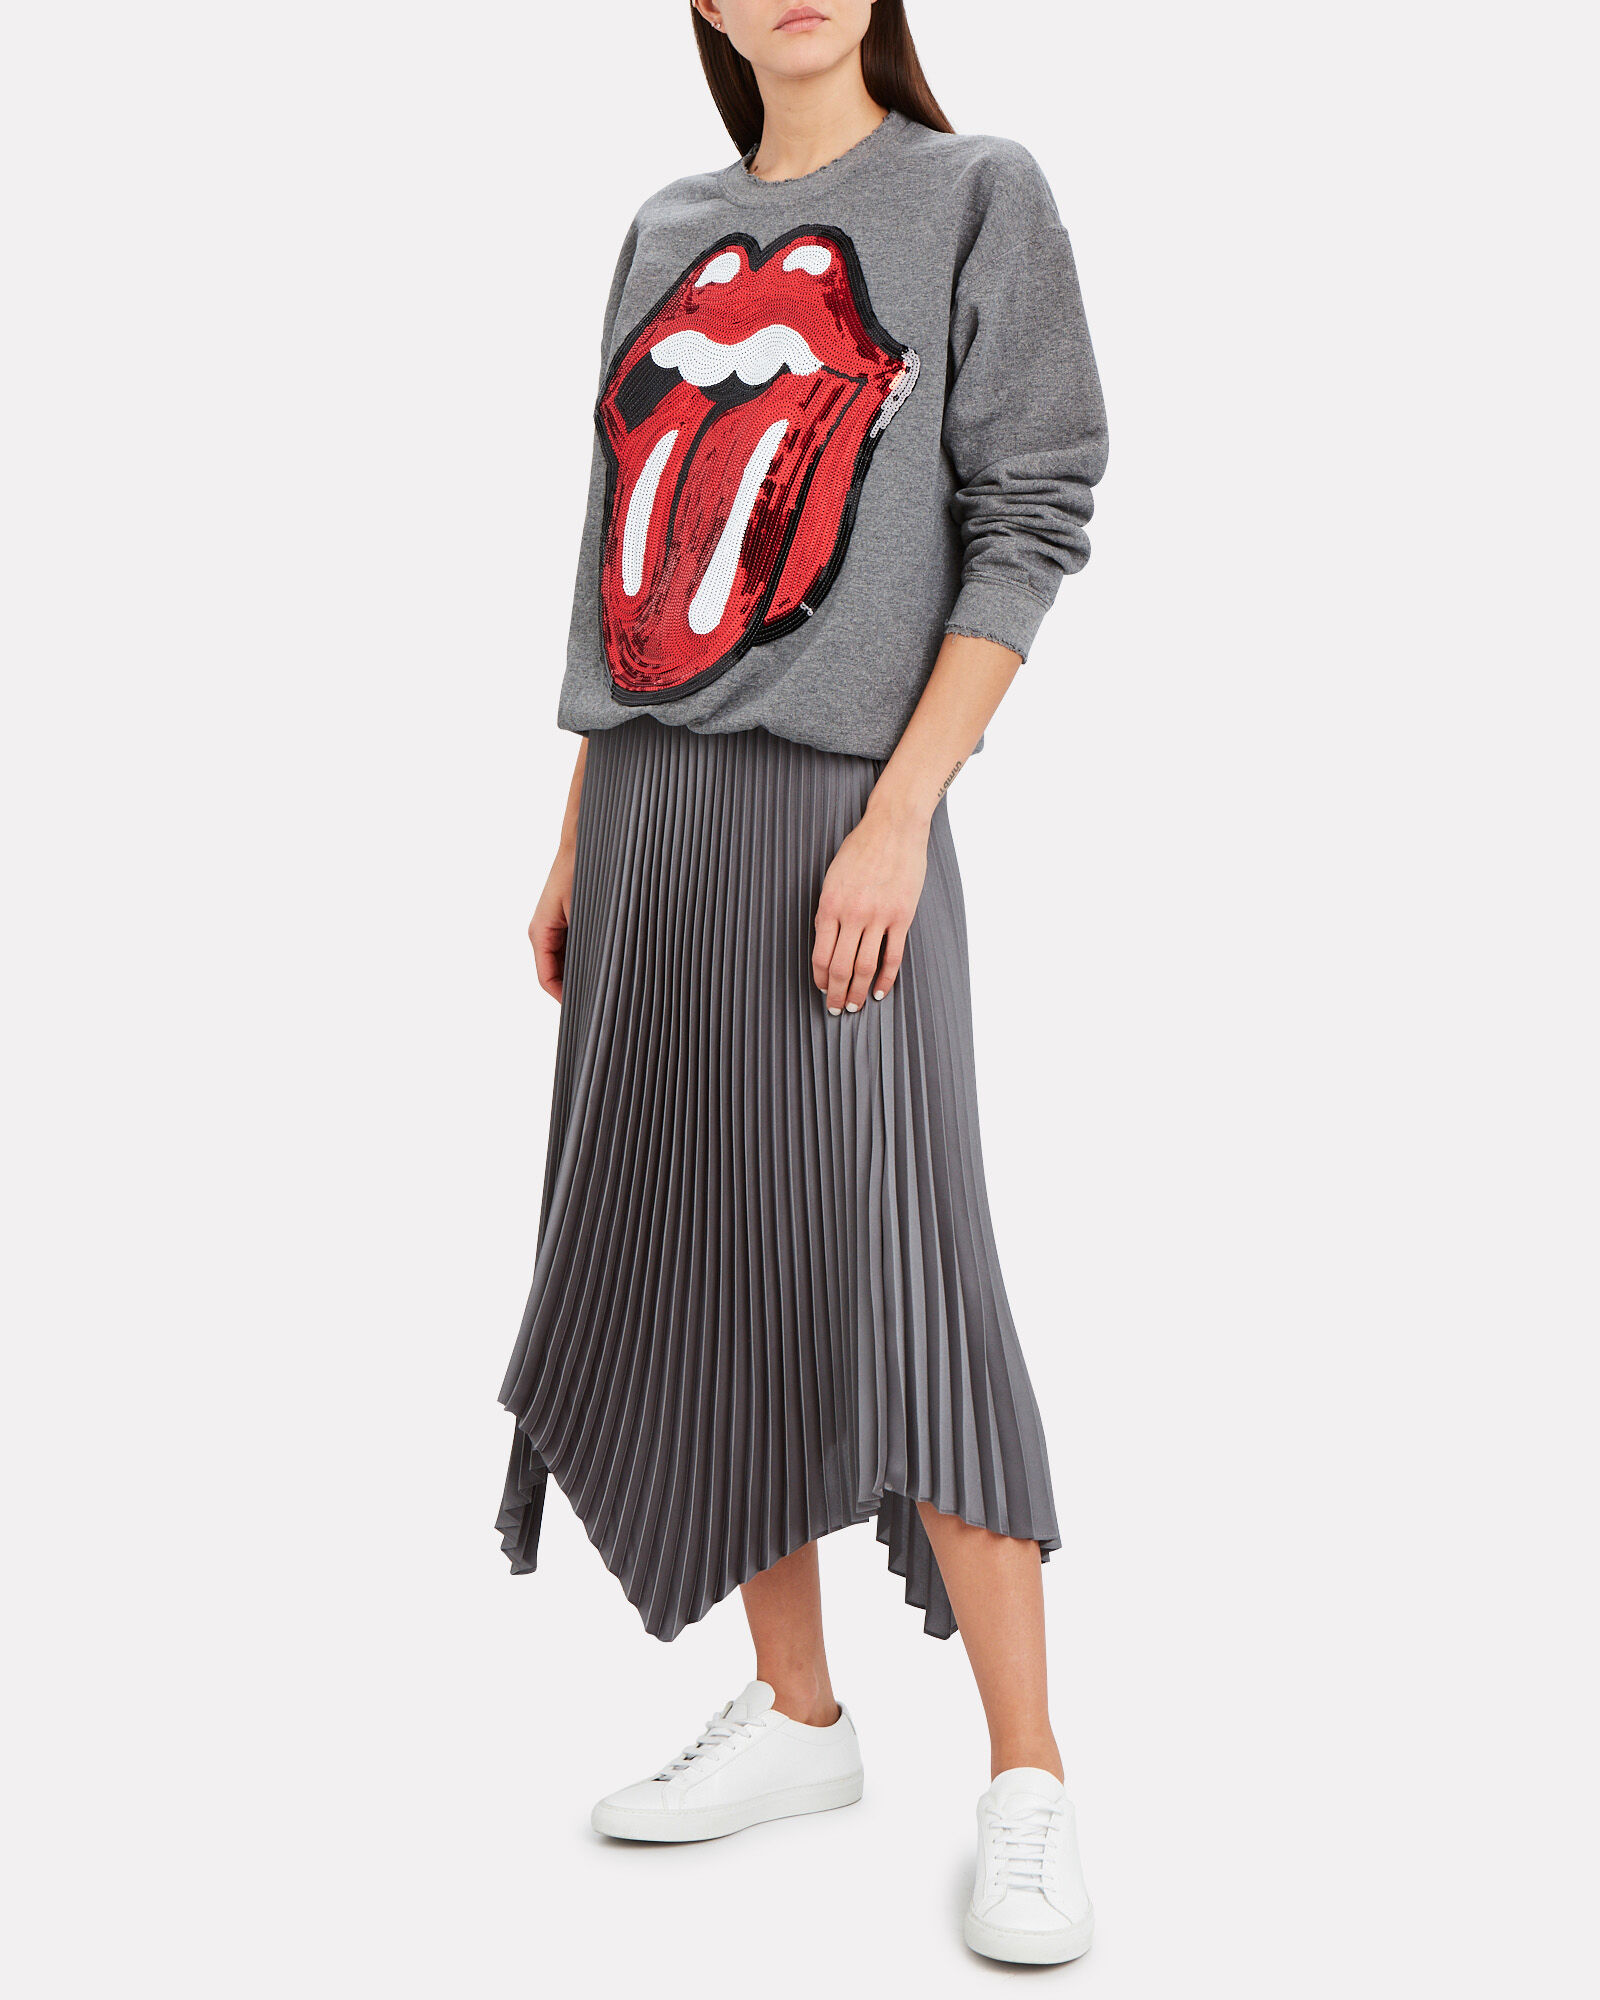 Rolling Stones Sequin Sweatshirt, GREY, hi-res